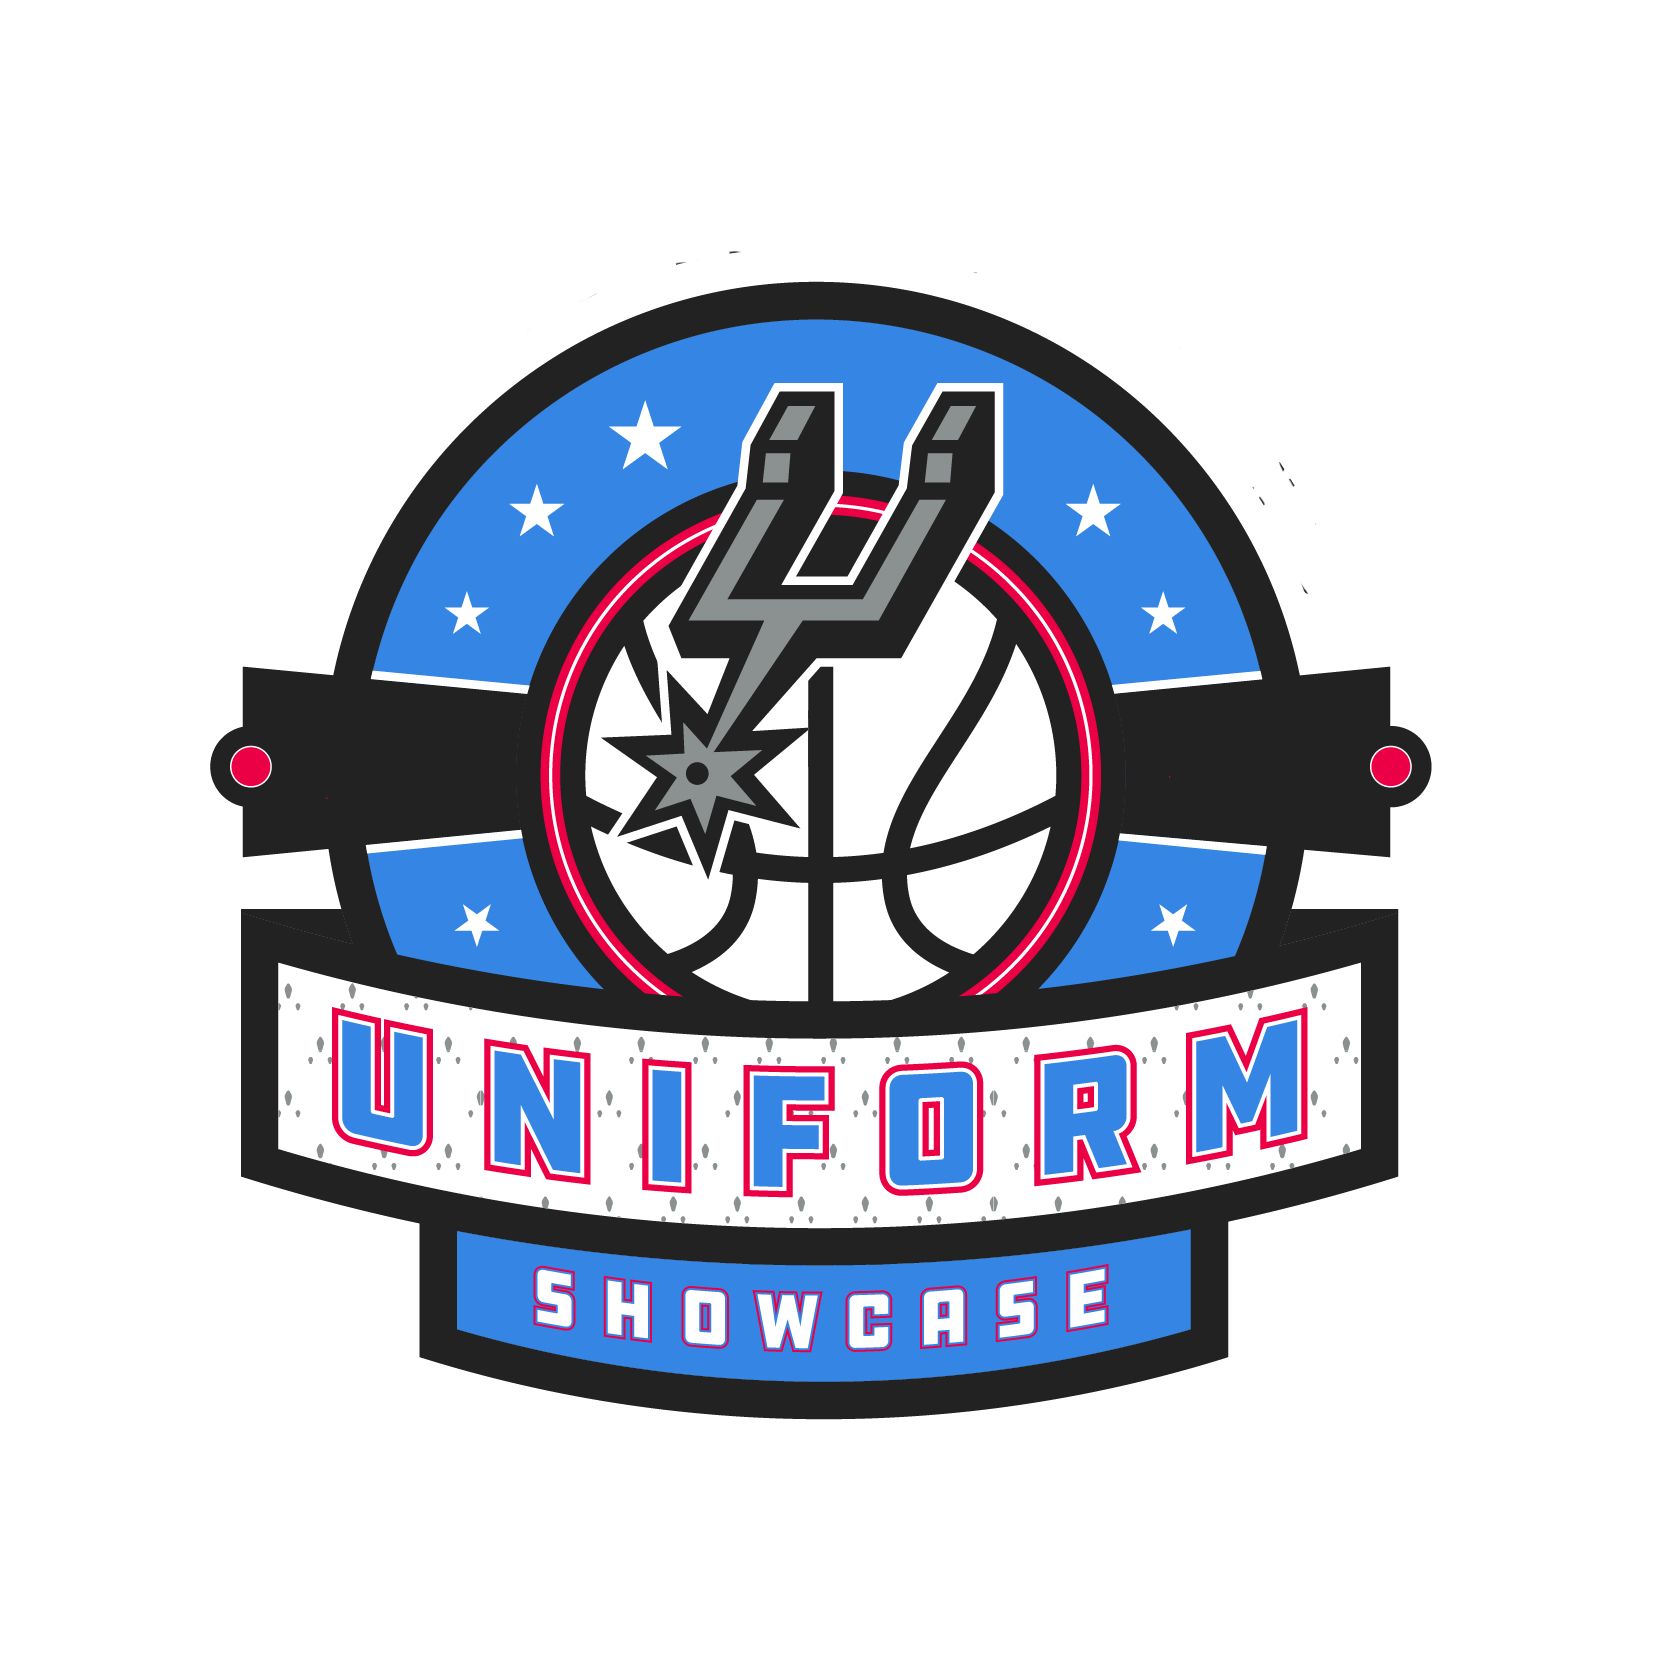 SPURS UNIFORM SHOWCASE